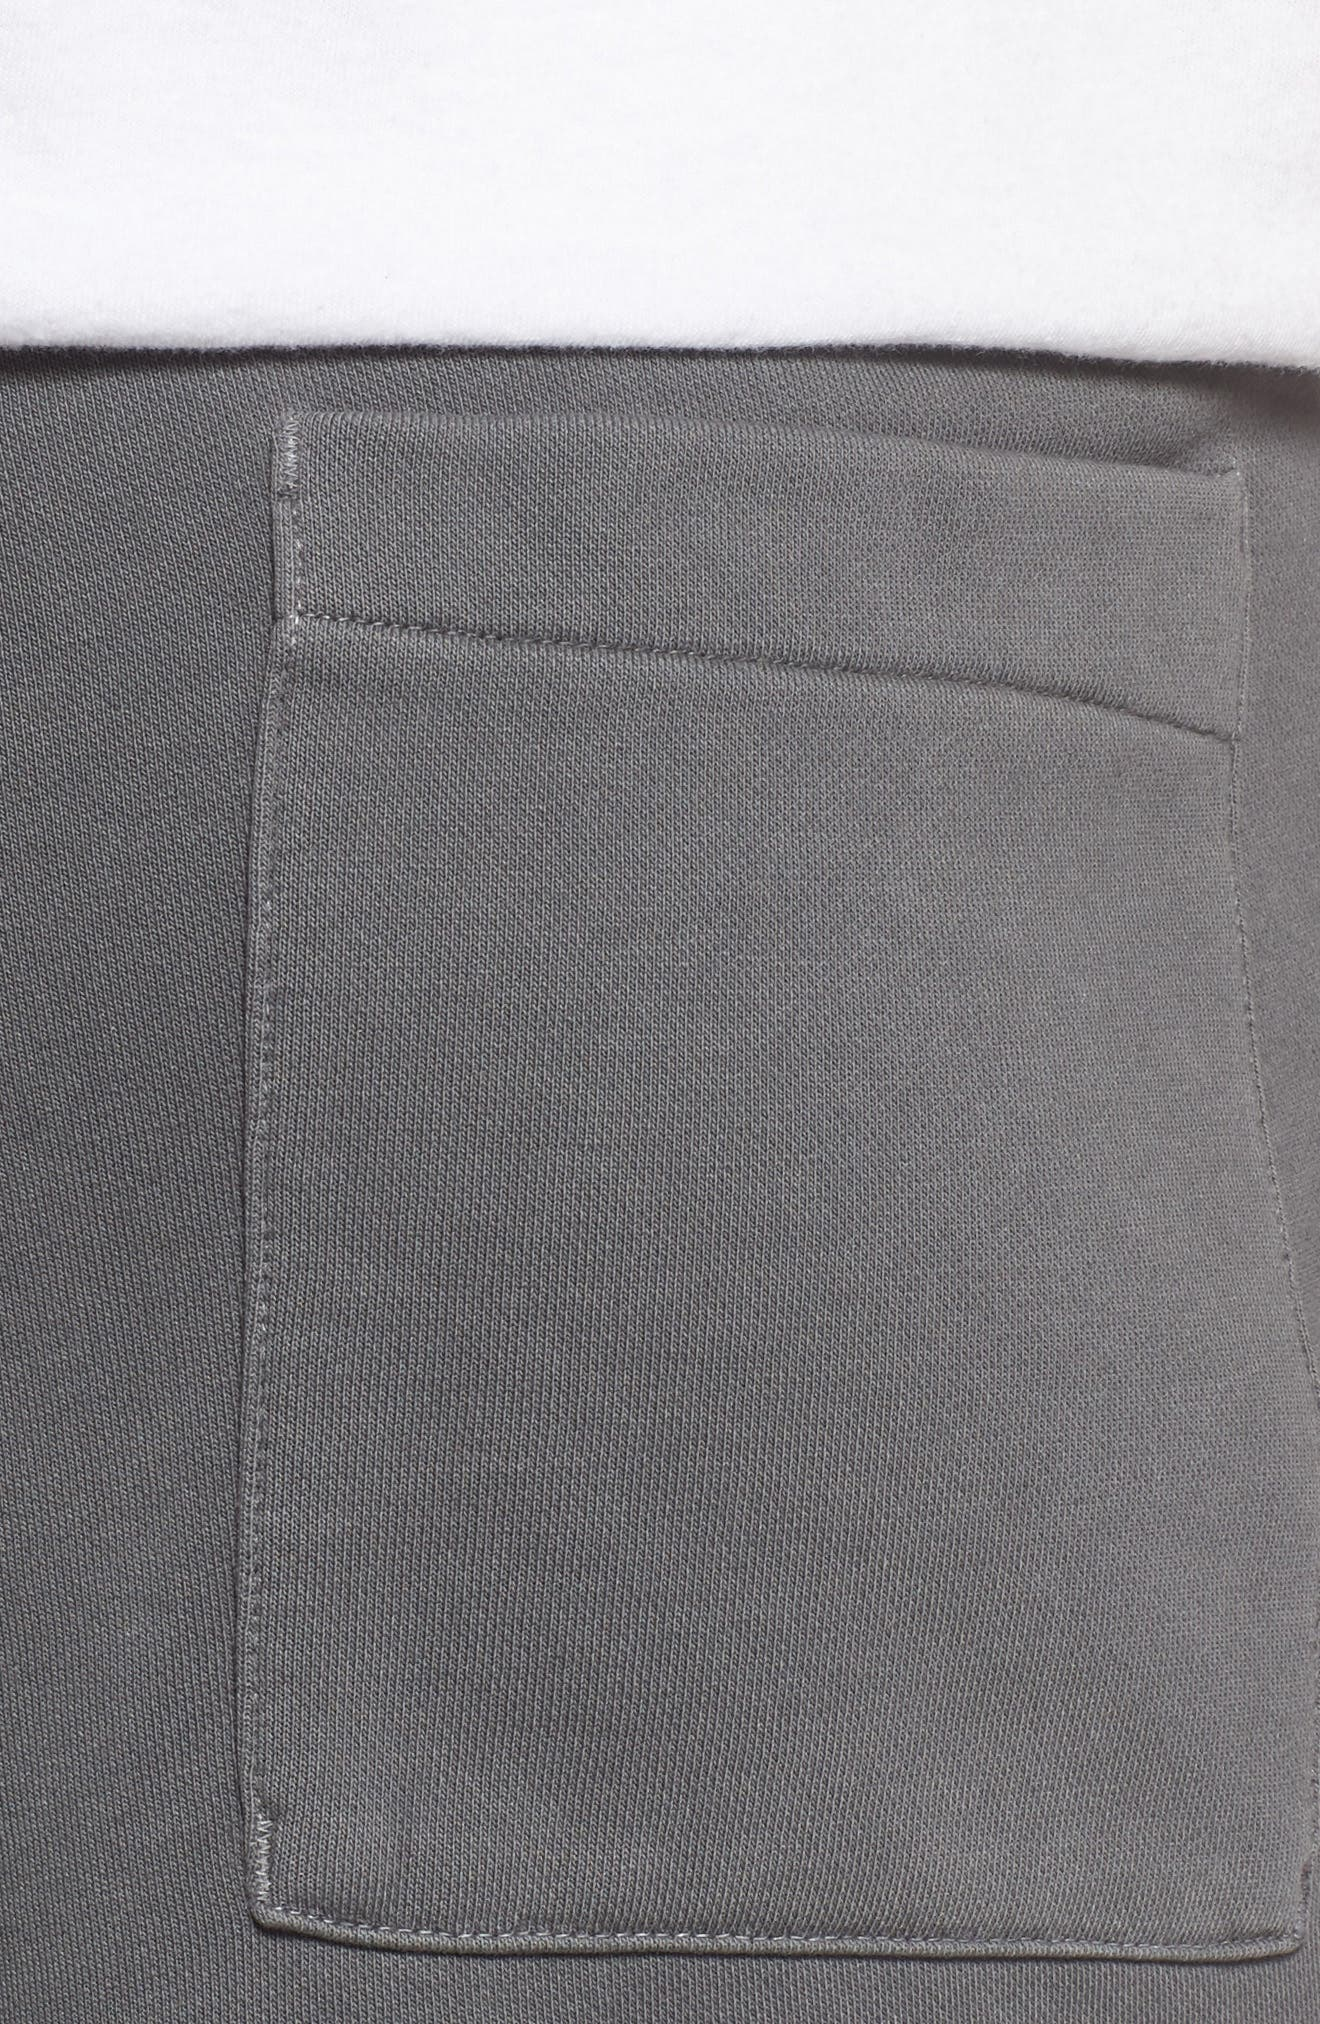 NSW Cotton Blend Shorts,                             Alternate thumbnail 4, color,                             Black/ Anthracite/ Cool Grey